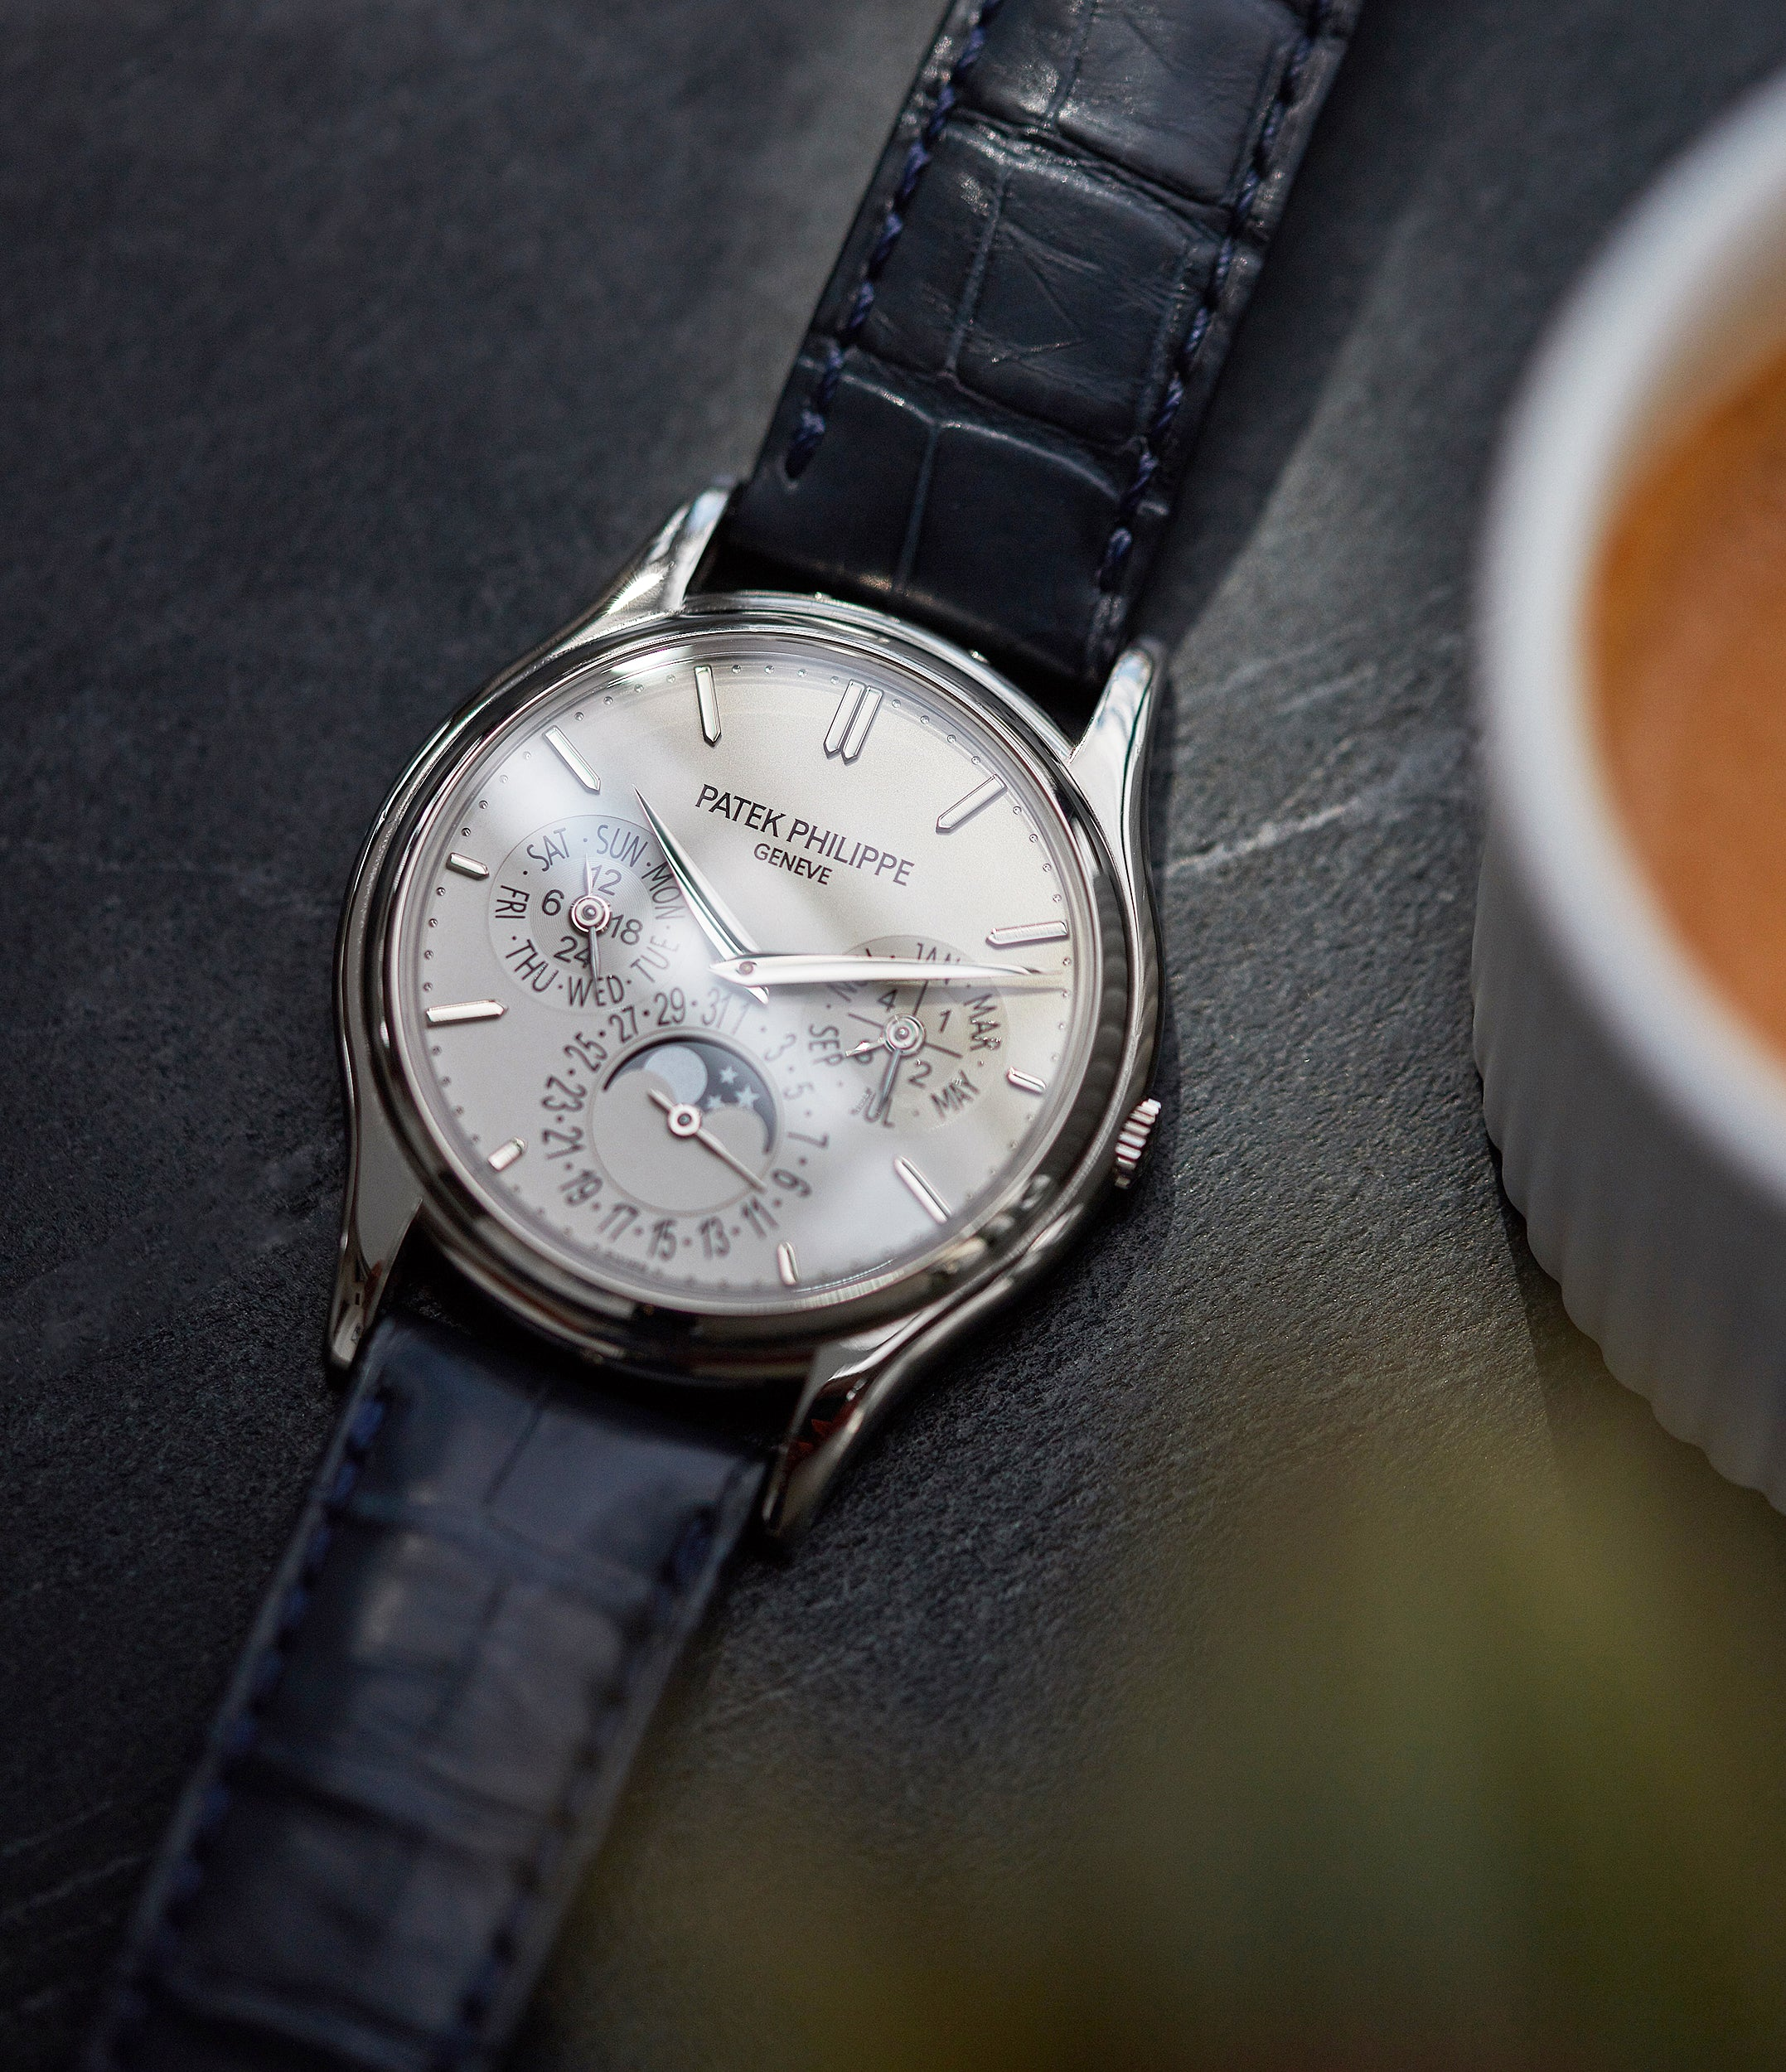 shop pre-owned Patek Philippe 5140G Perpetual Calendar moonphase white gold silver dial dress watch for sale online A Collected Man London UK specialist rare watches